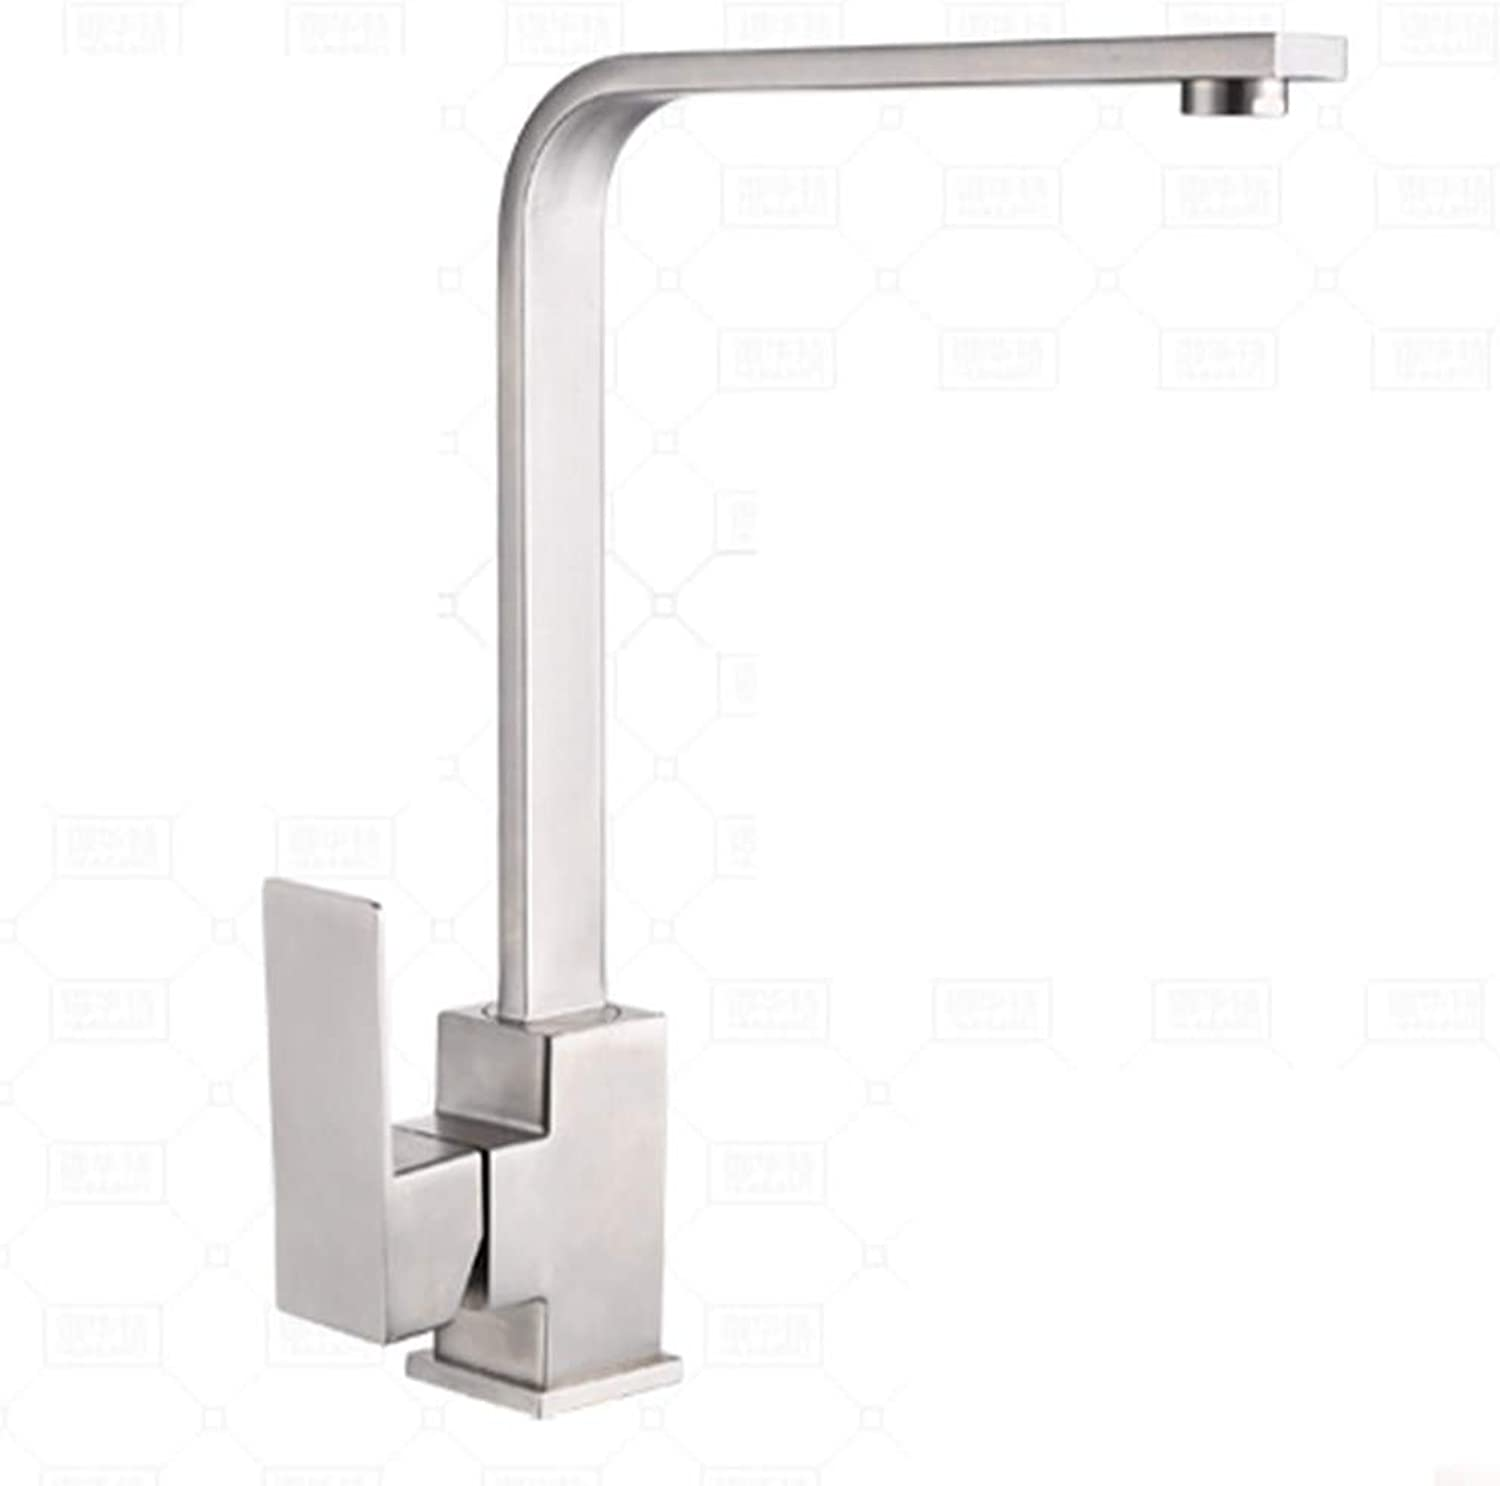 SEEKSUNG Kitchen faucet - Contemporary Nickel Polished Ceramic Valve, Hot and cold water tap